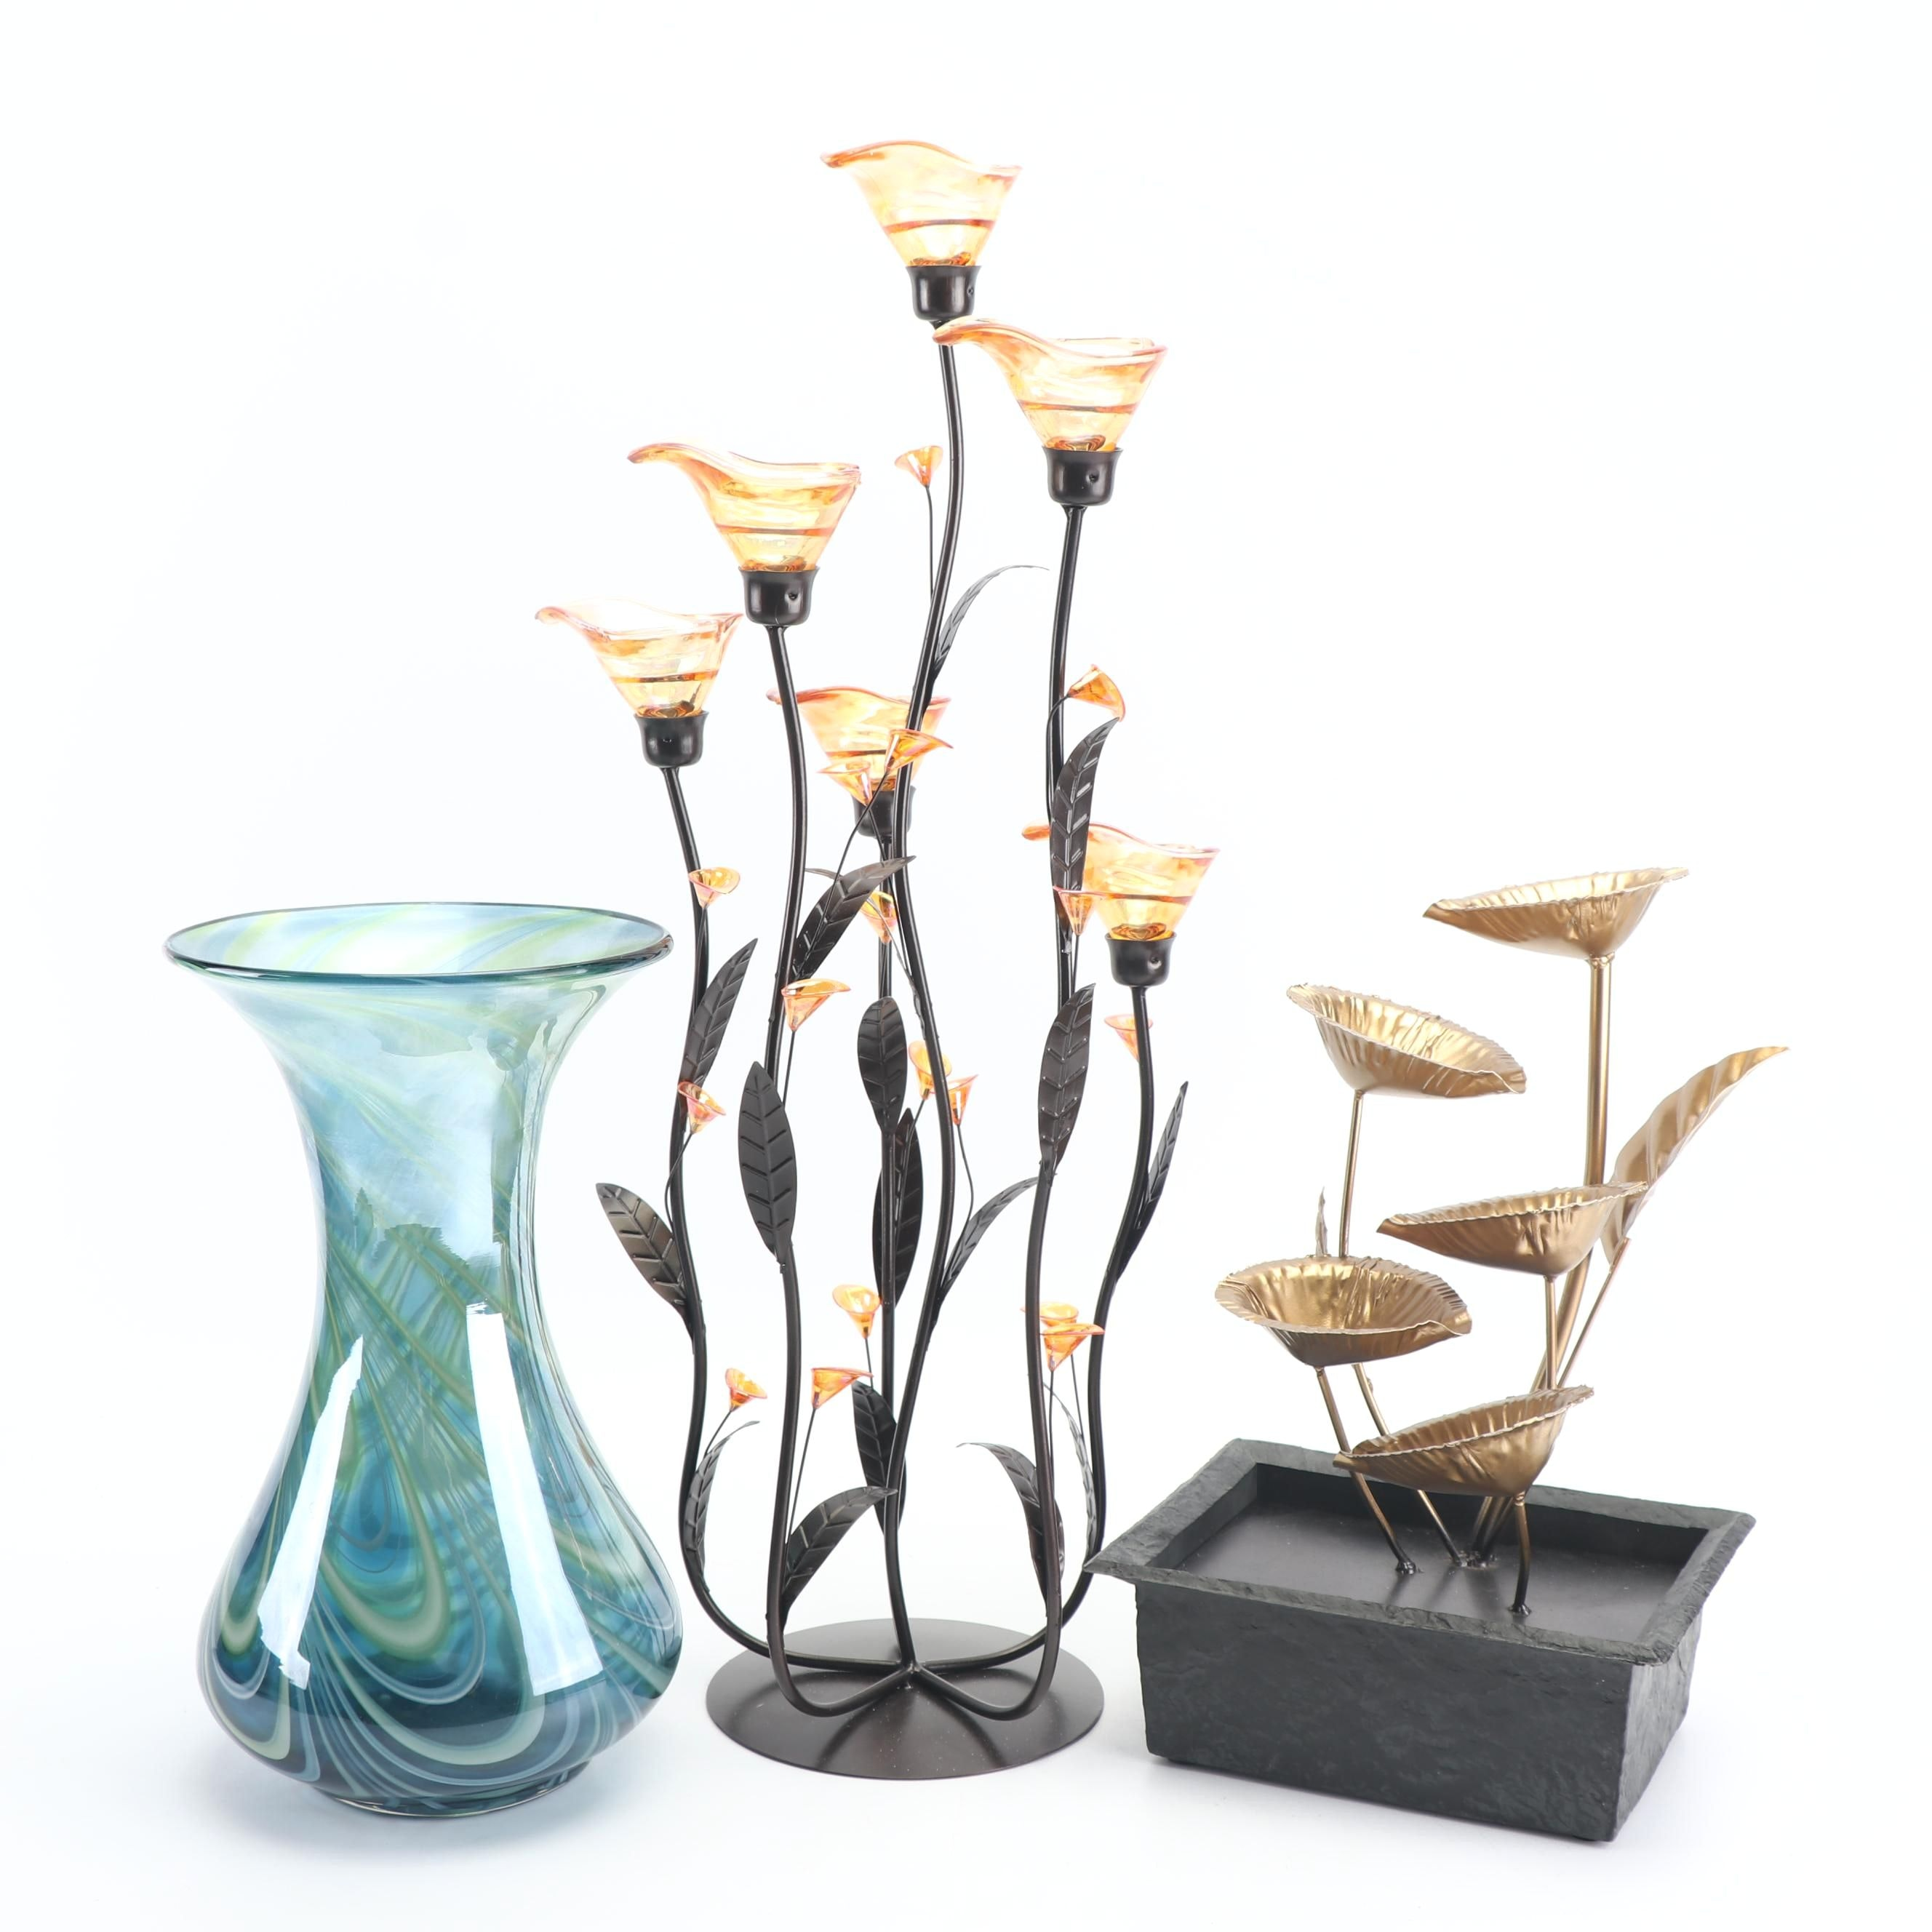 Swirled Art Glass Vase with Candle Holder and Indoor Fountain